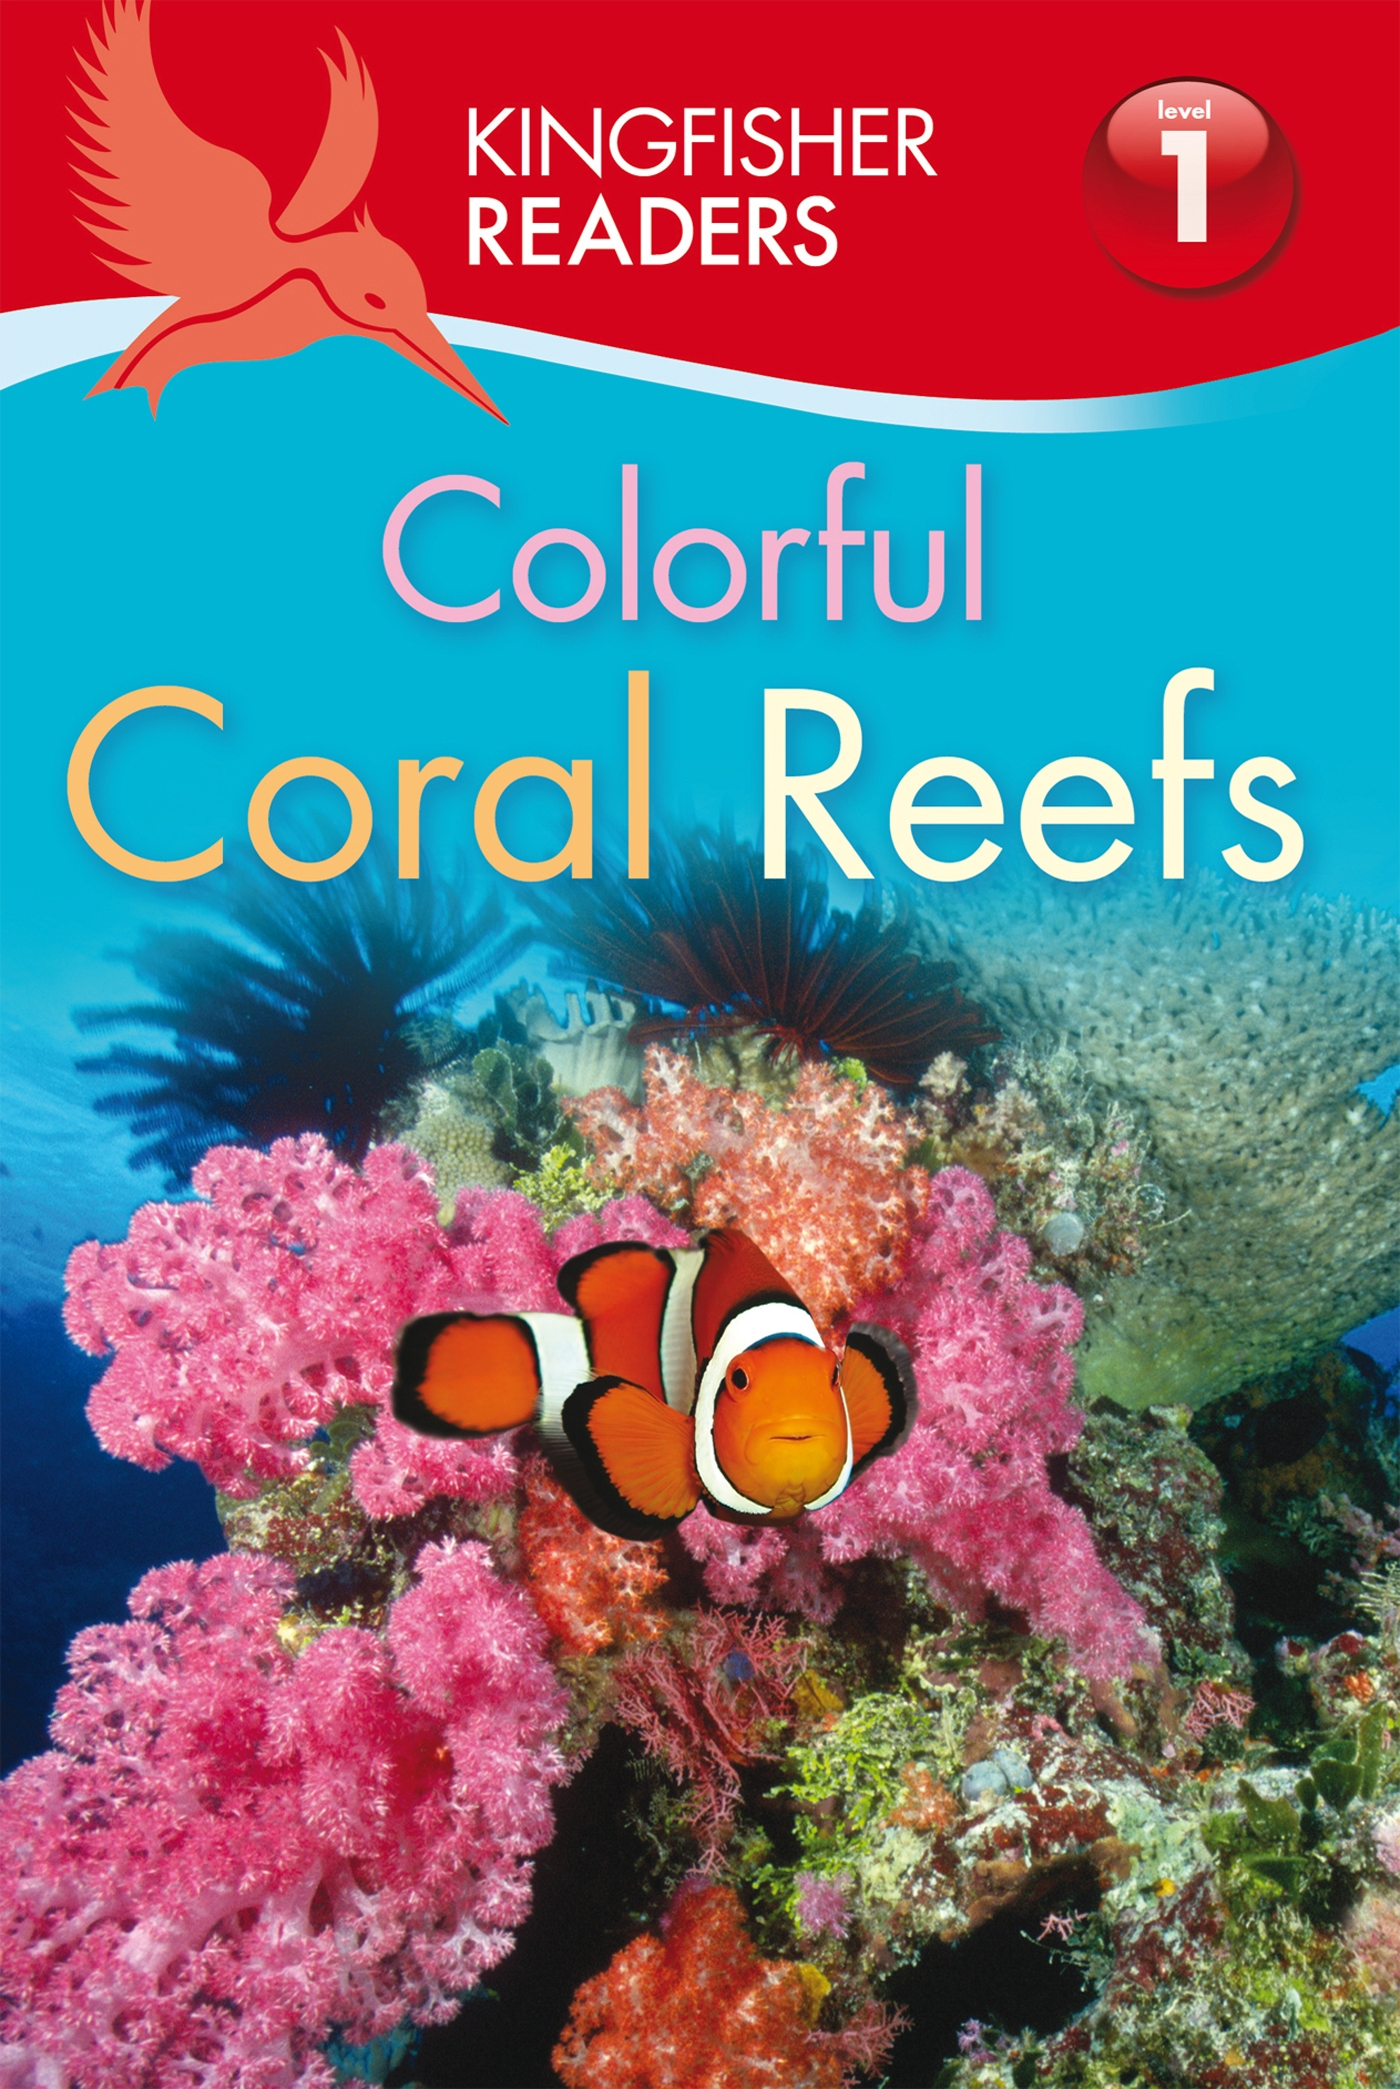 Kingfisher Readers L1: Colorful Coral Reefs pdf